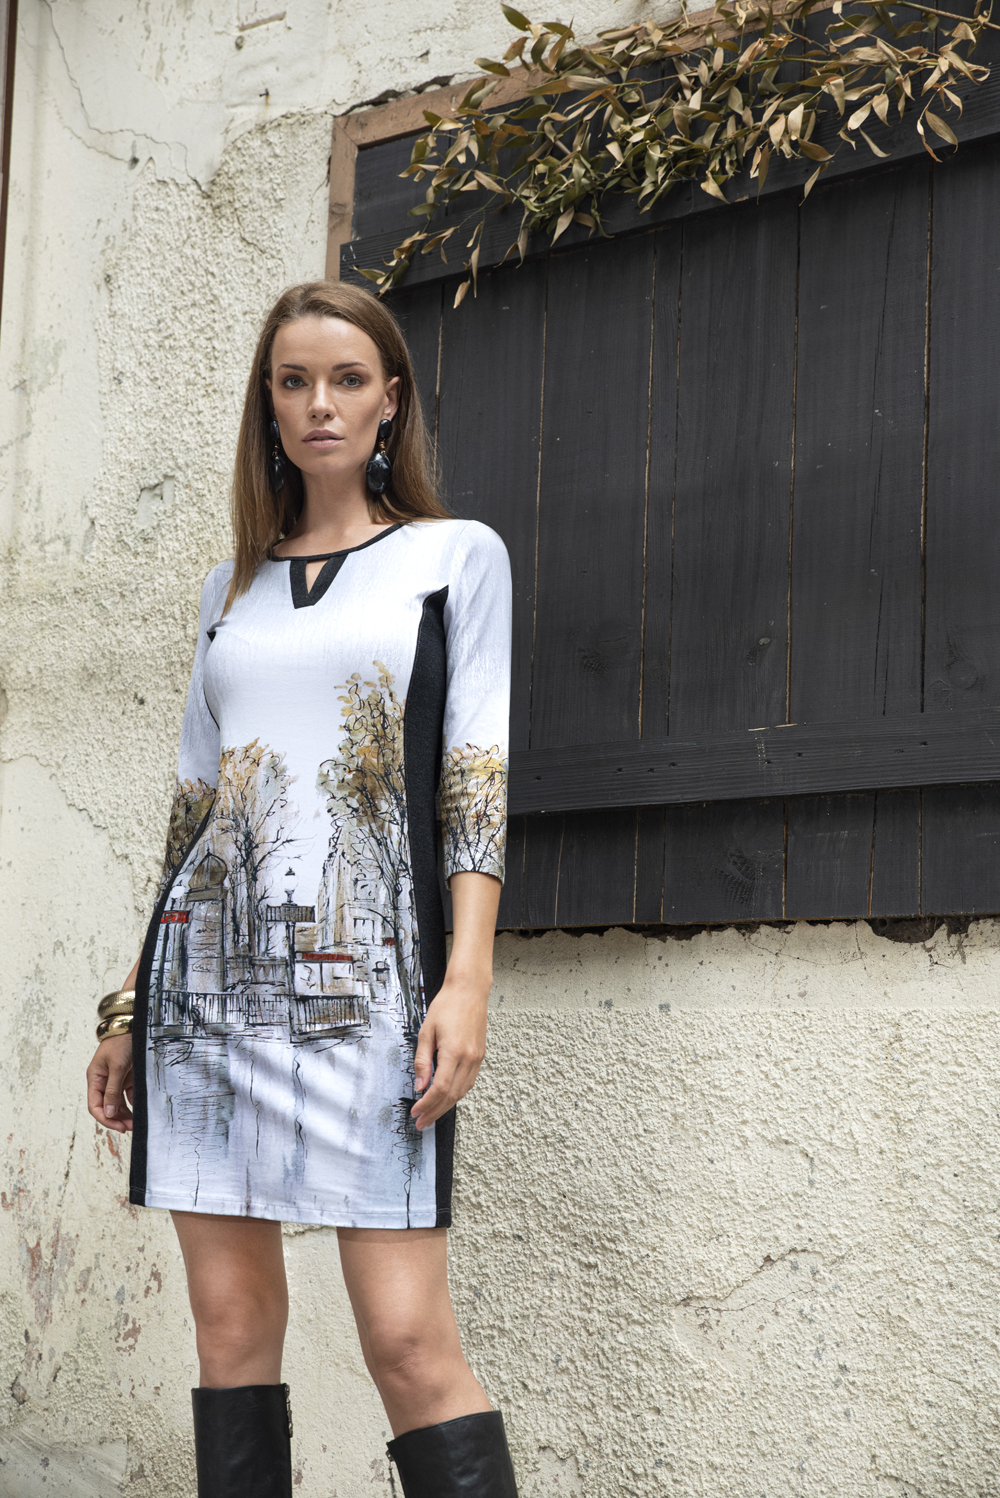 Simply Art Dolcezza: Splendid Parisian Life Keyhole Dress/Tunic SOLD OUT Dolcezza_SimplyArt_59705_N